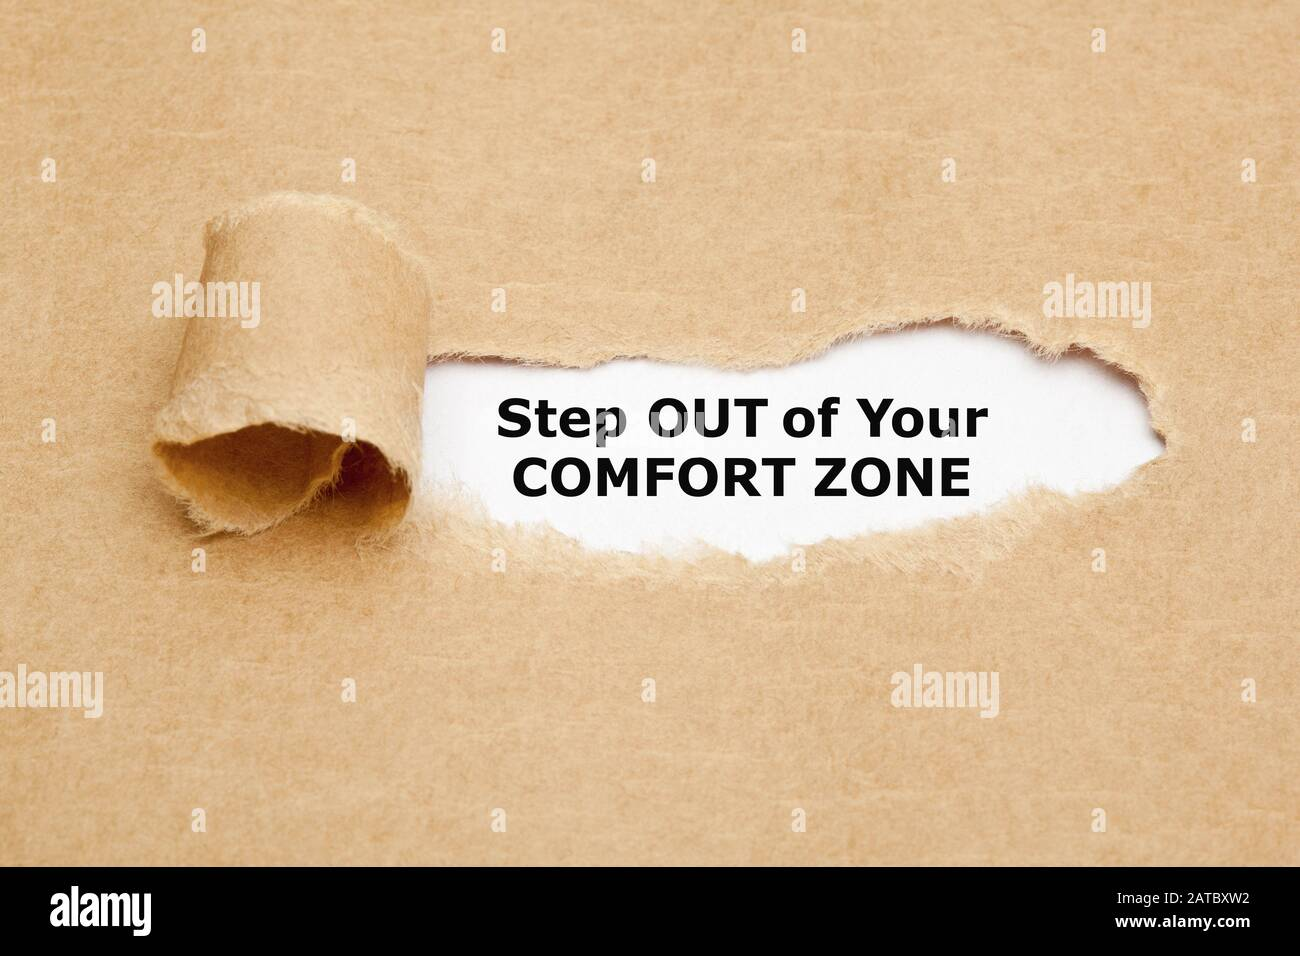 Motivational quote Step out of your comfort zone. appearing behind ripped brown paper. Stock Photo